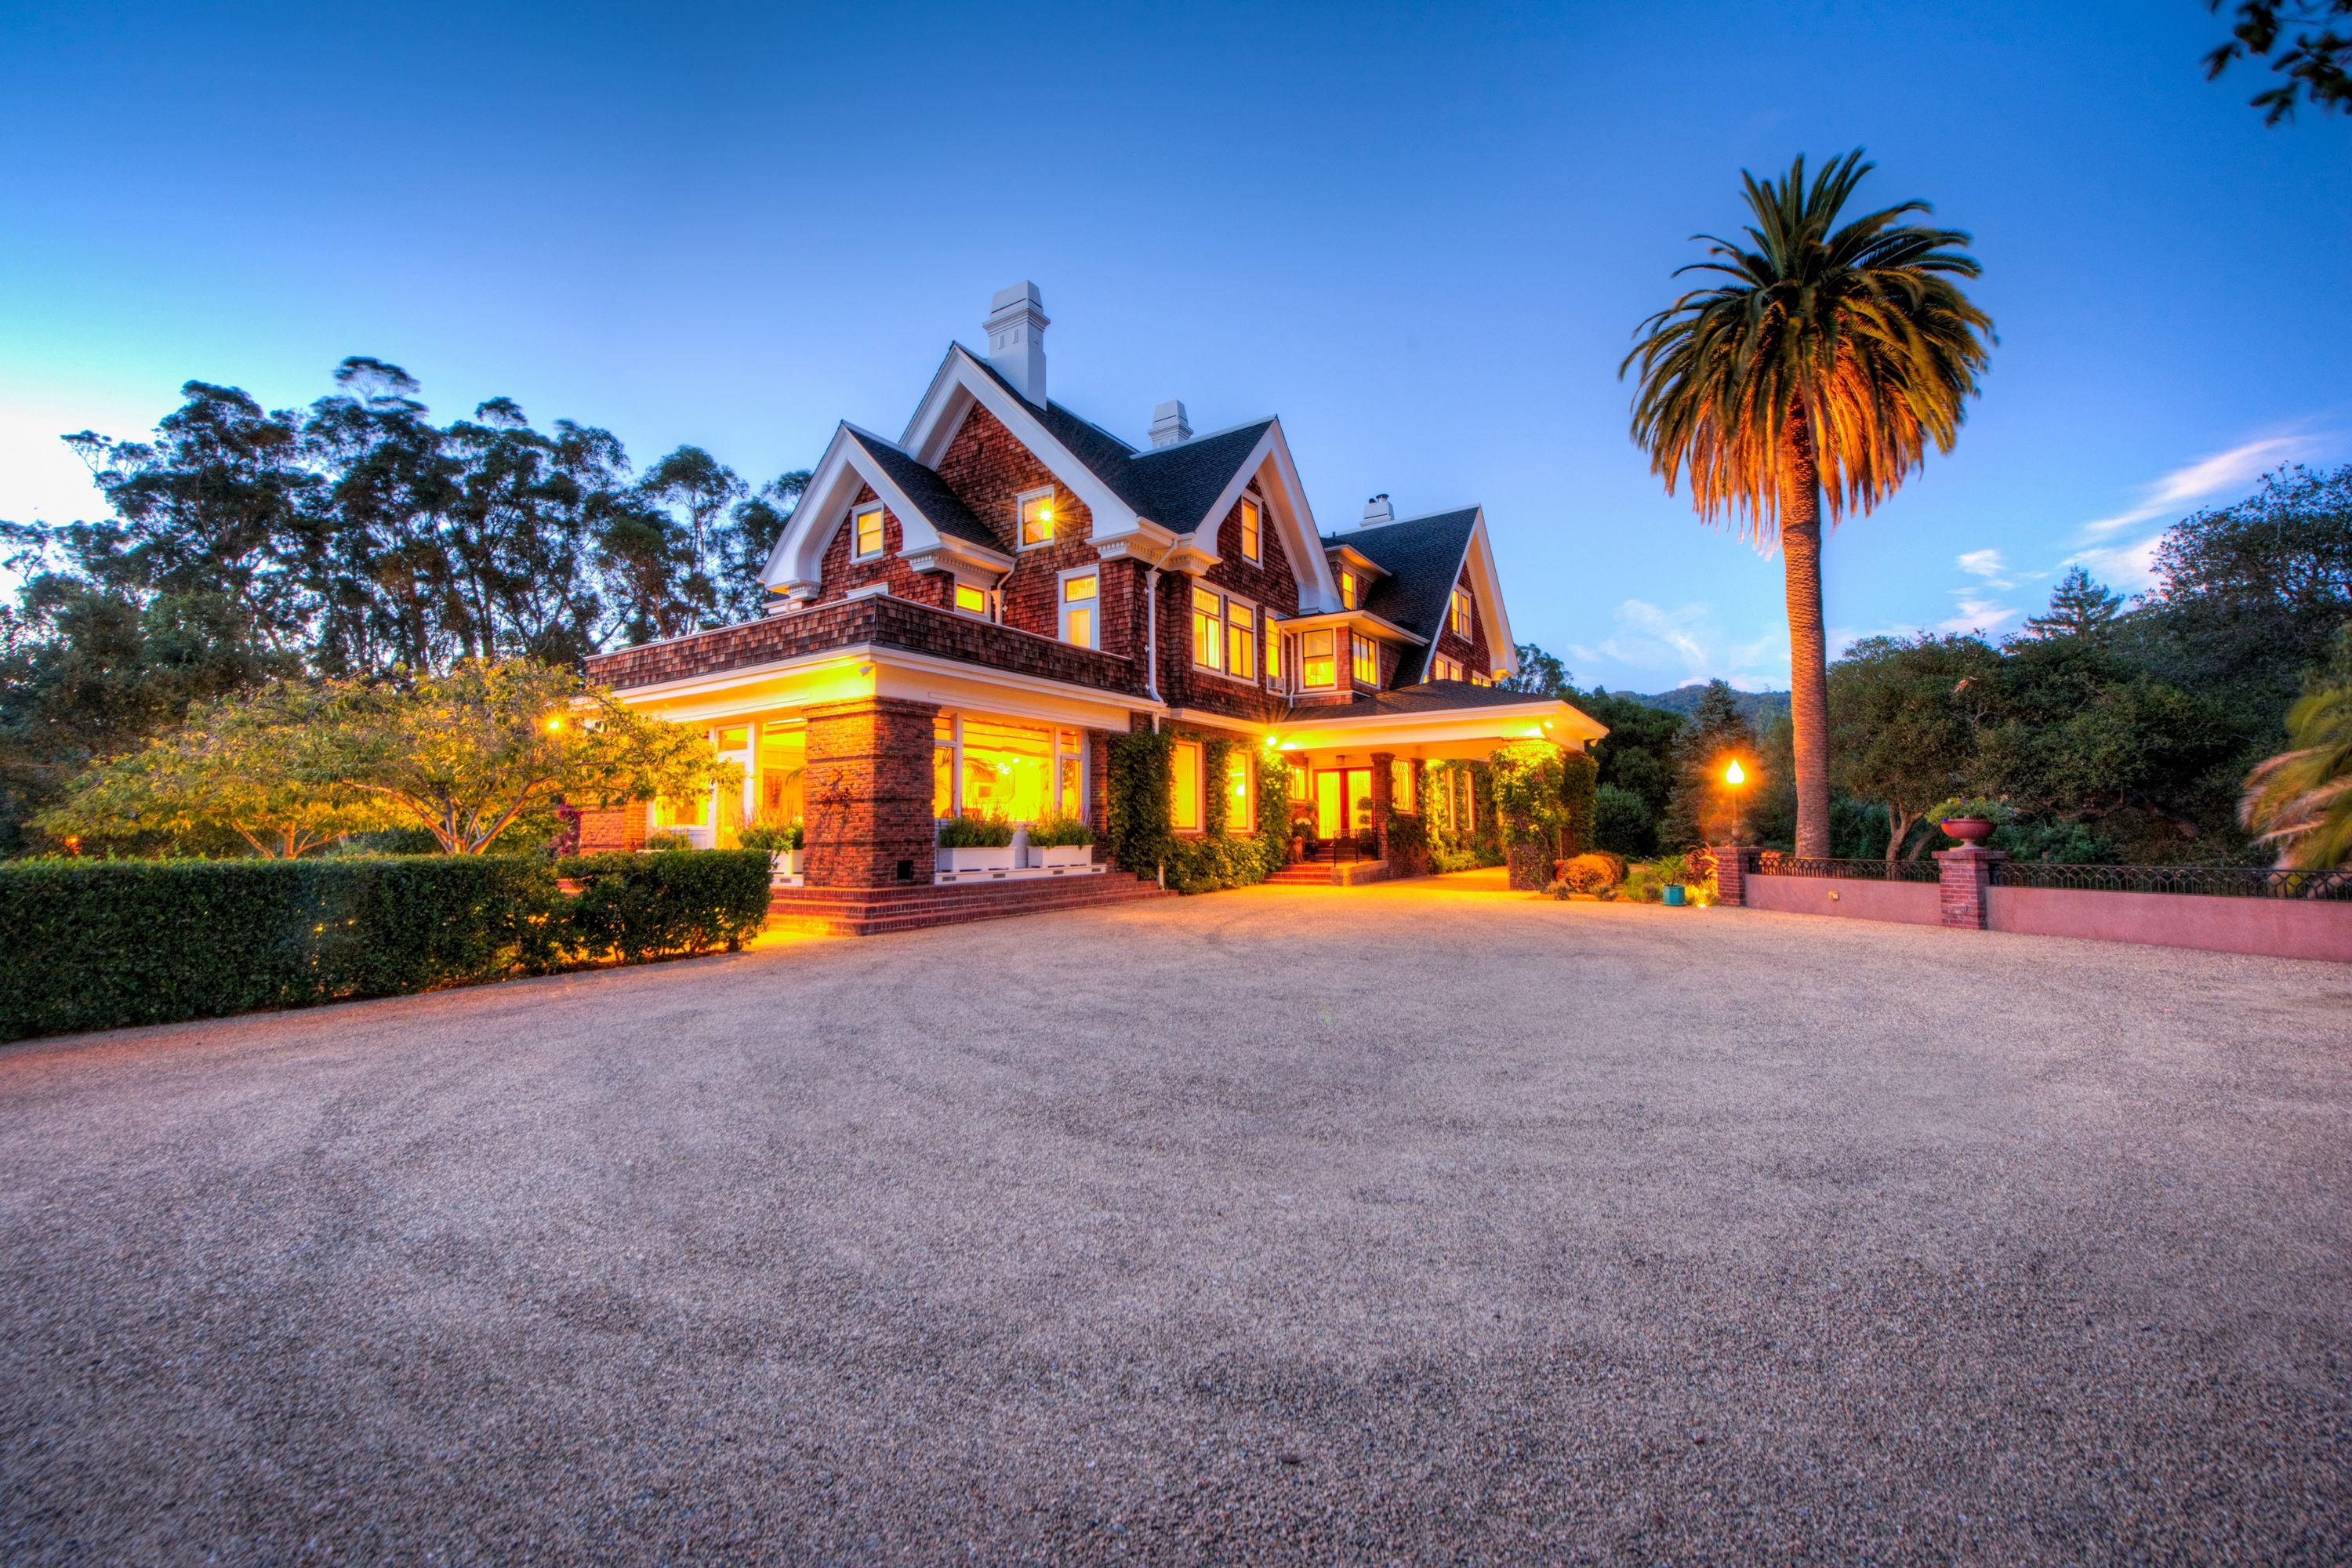 Single Family Home for Sale at Magnificent Gated Estate 201 Linden Lane San Rafael, California 94901 United States